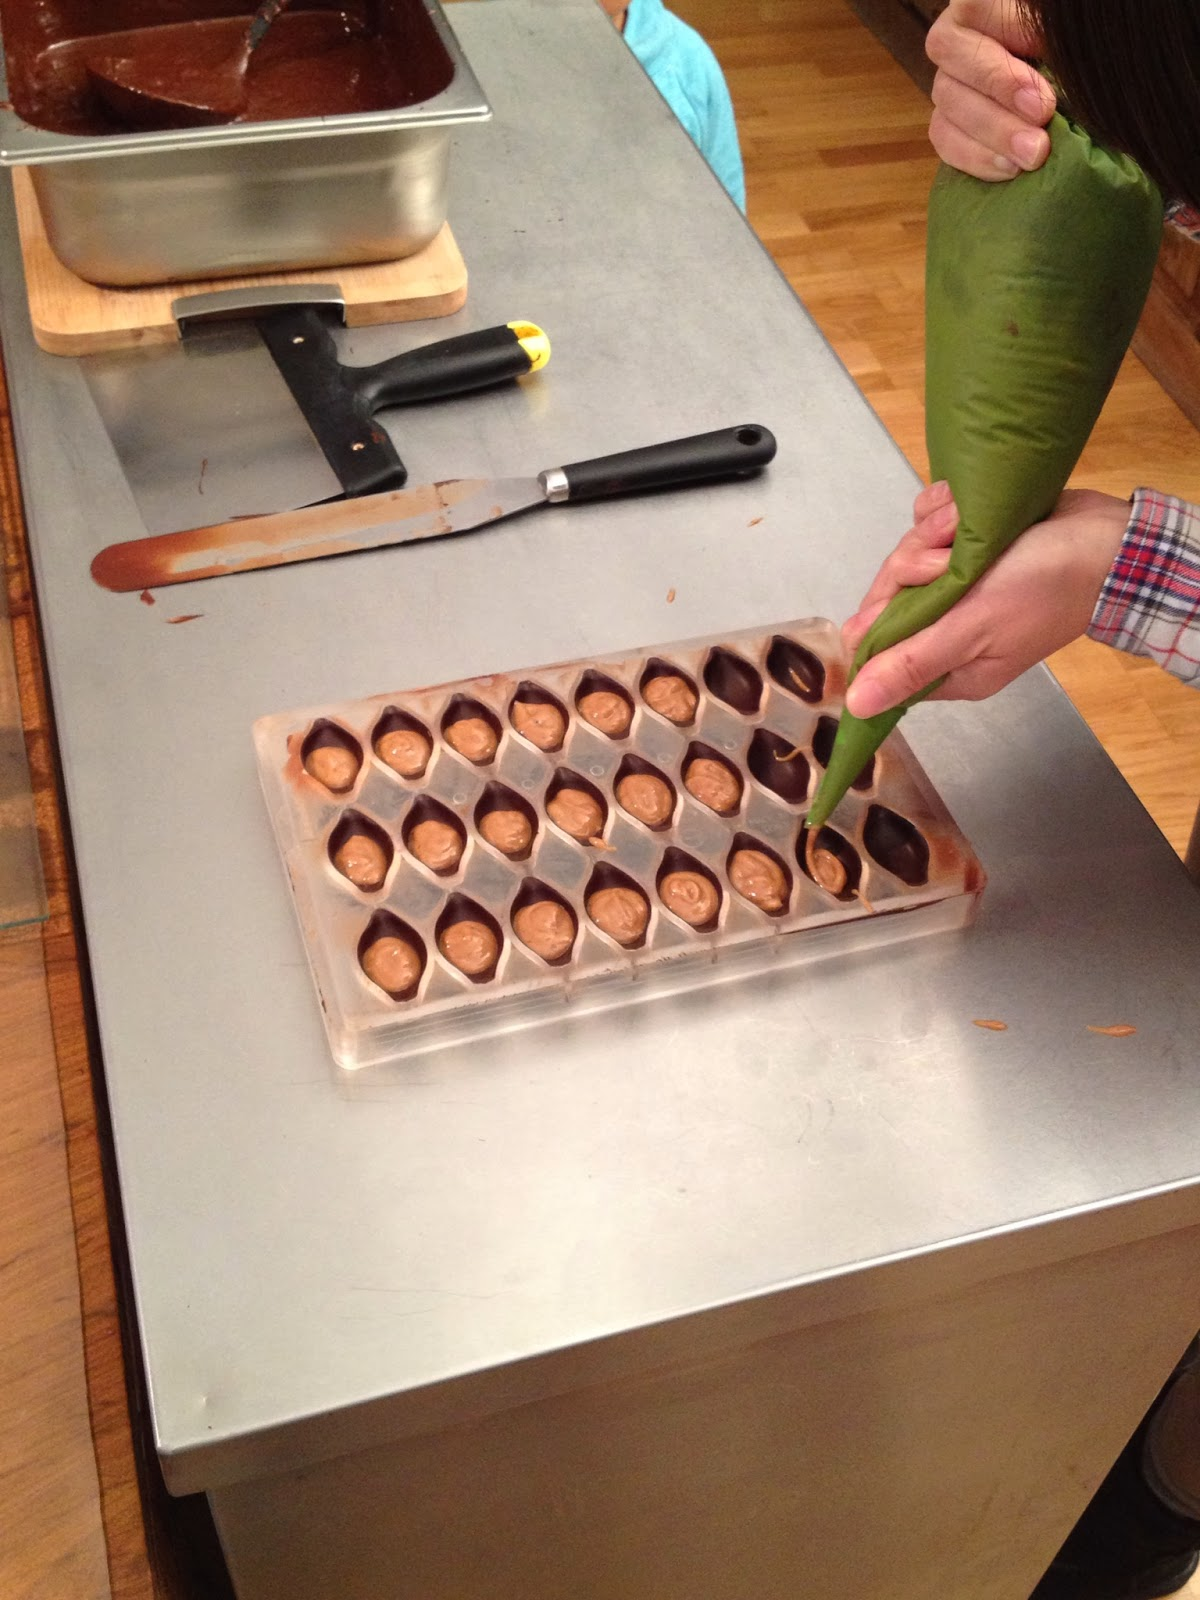 Brussels - Making hazelnut filled pralines during the chocolate tour